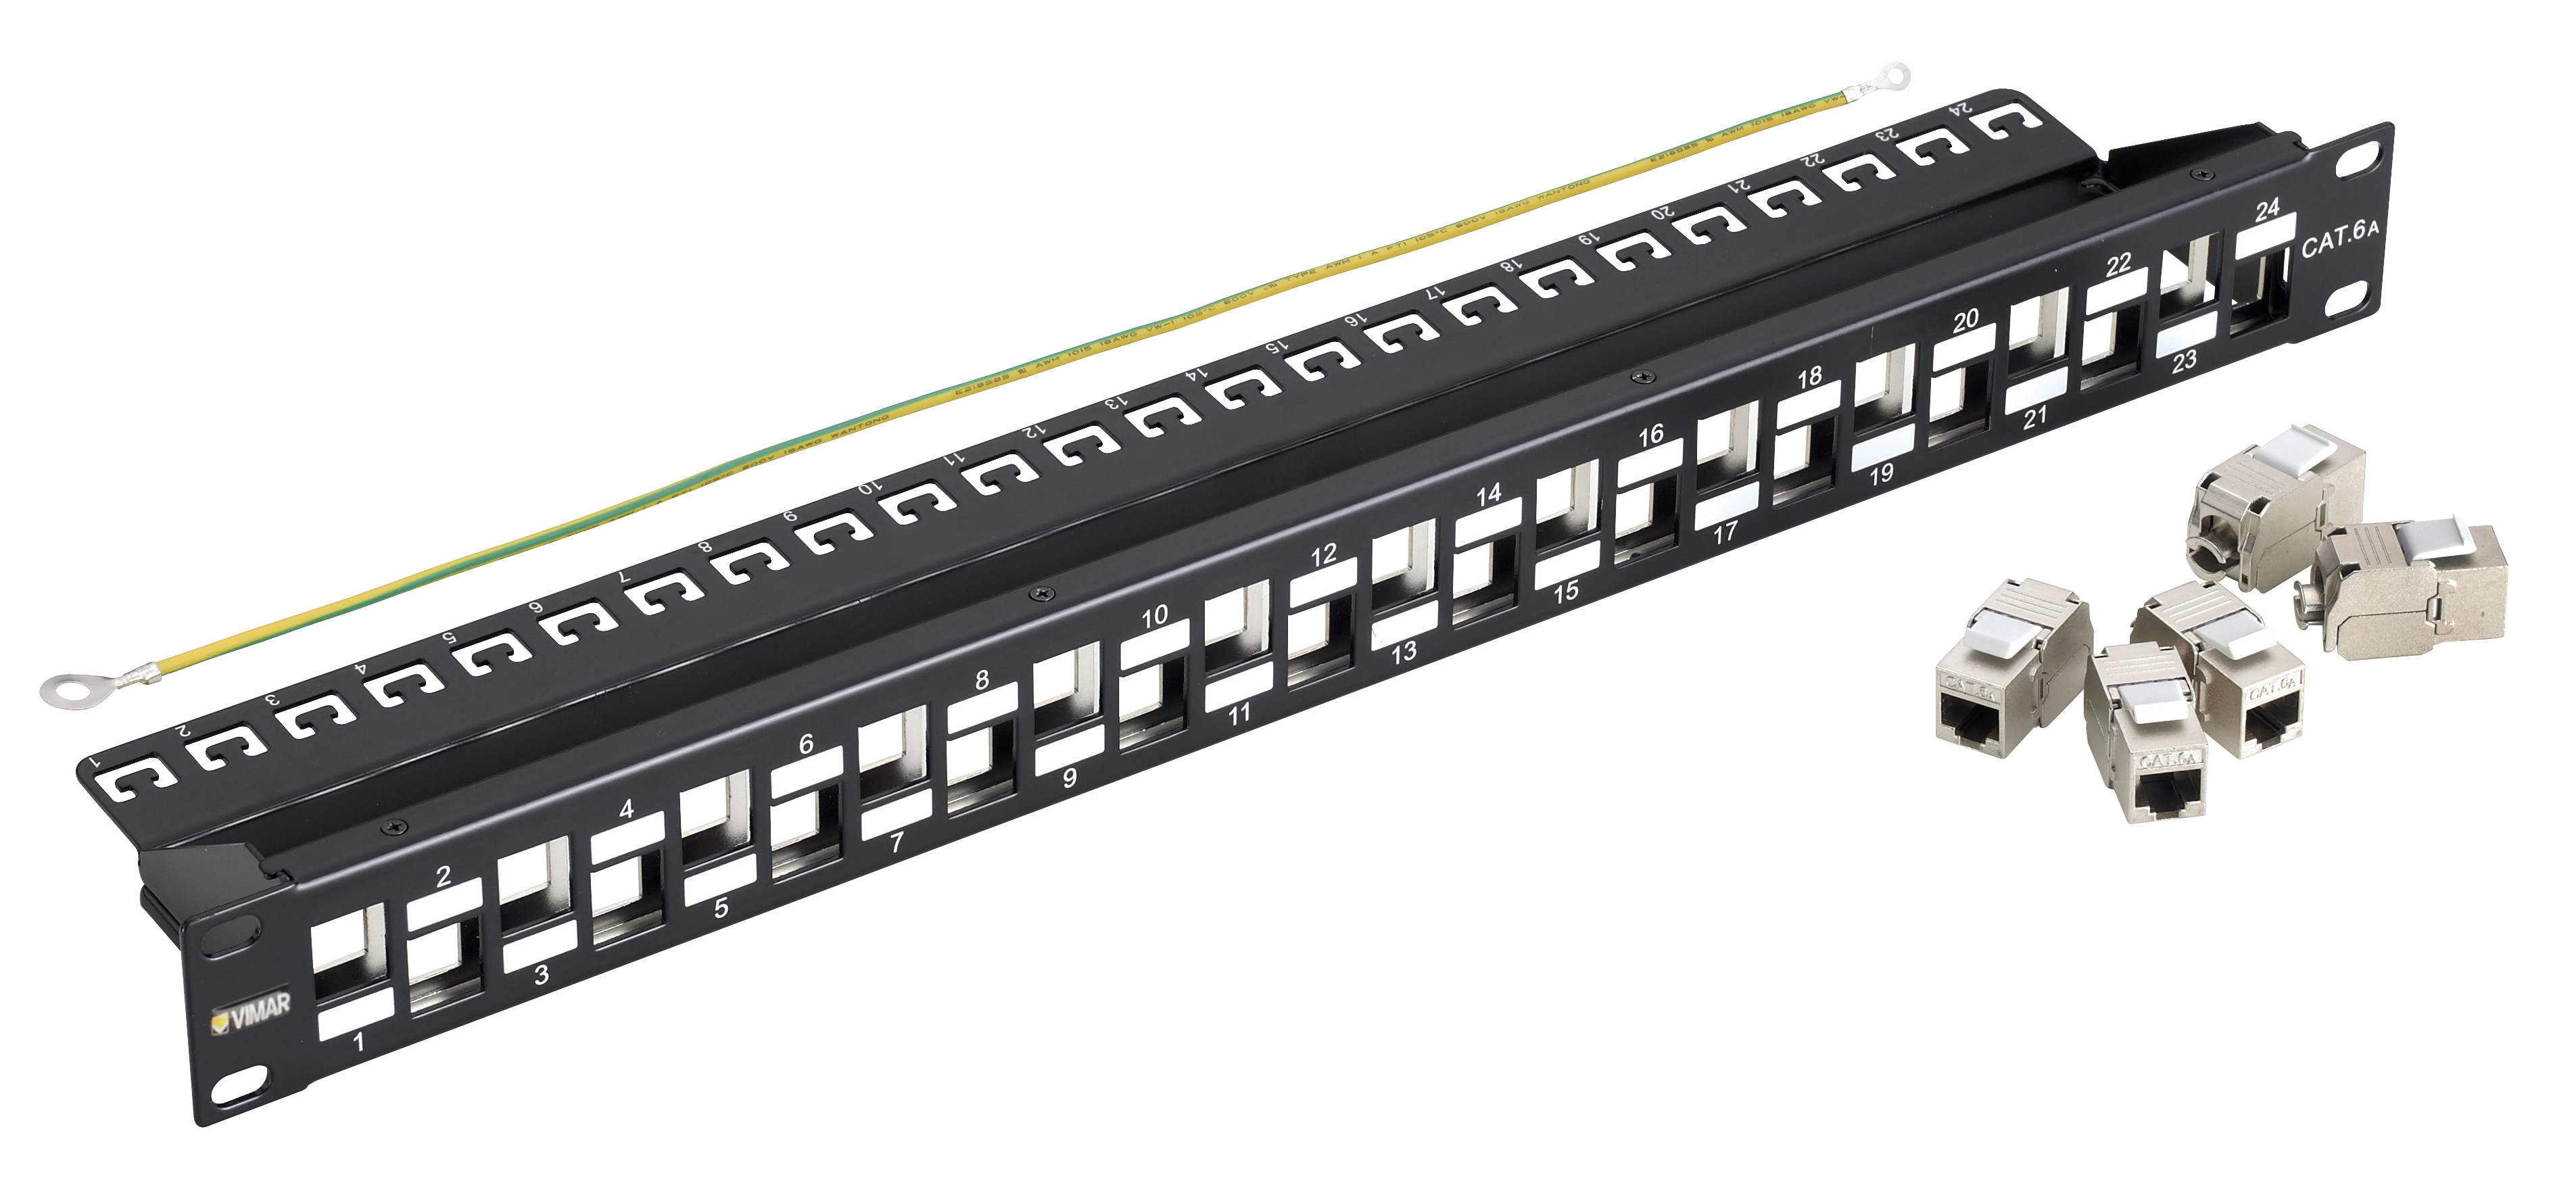 cat 6a patch panel wiring diagrams  | 3810 x 1747